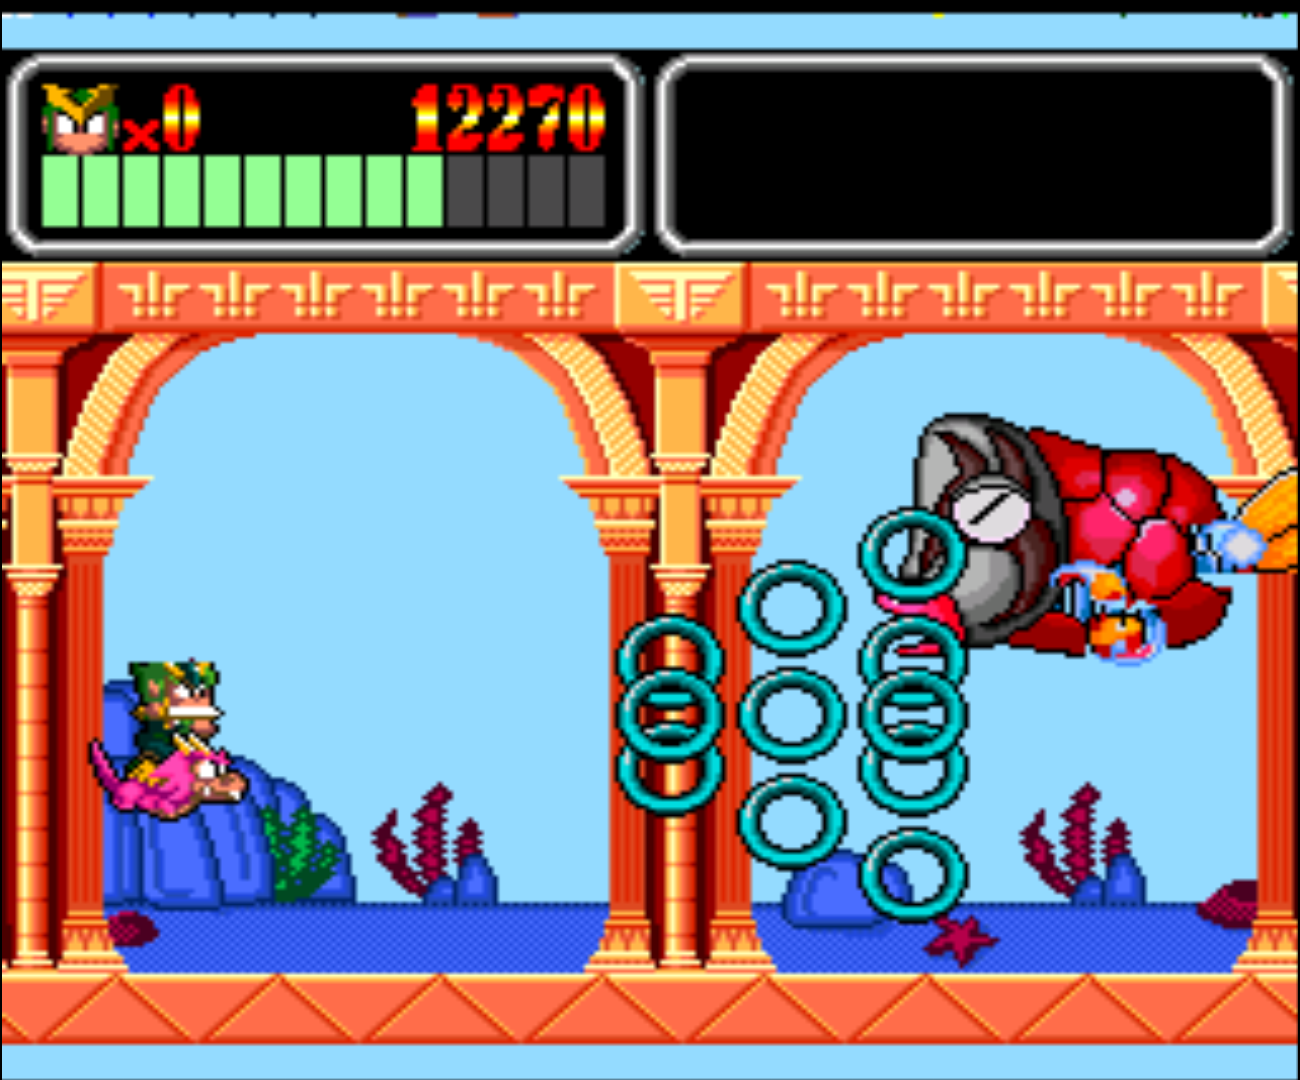 Figure 10 - Second stage of each level flying and boss fighting